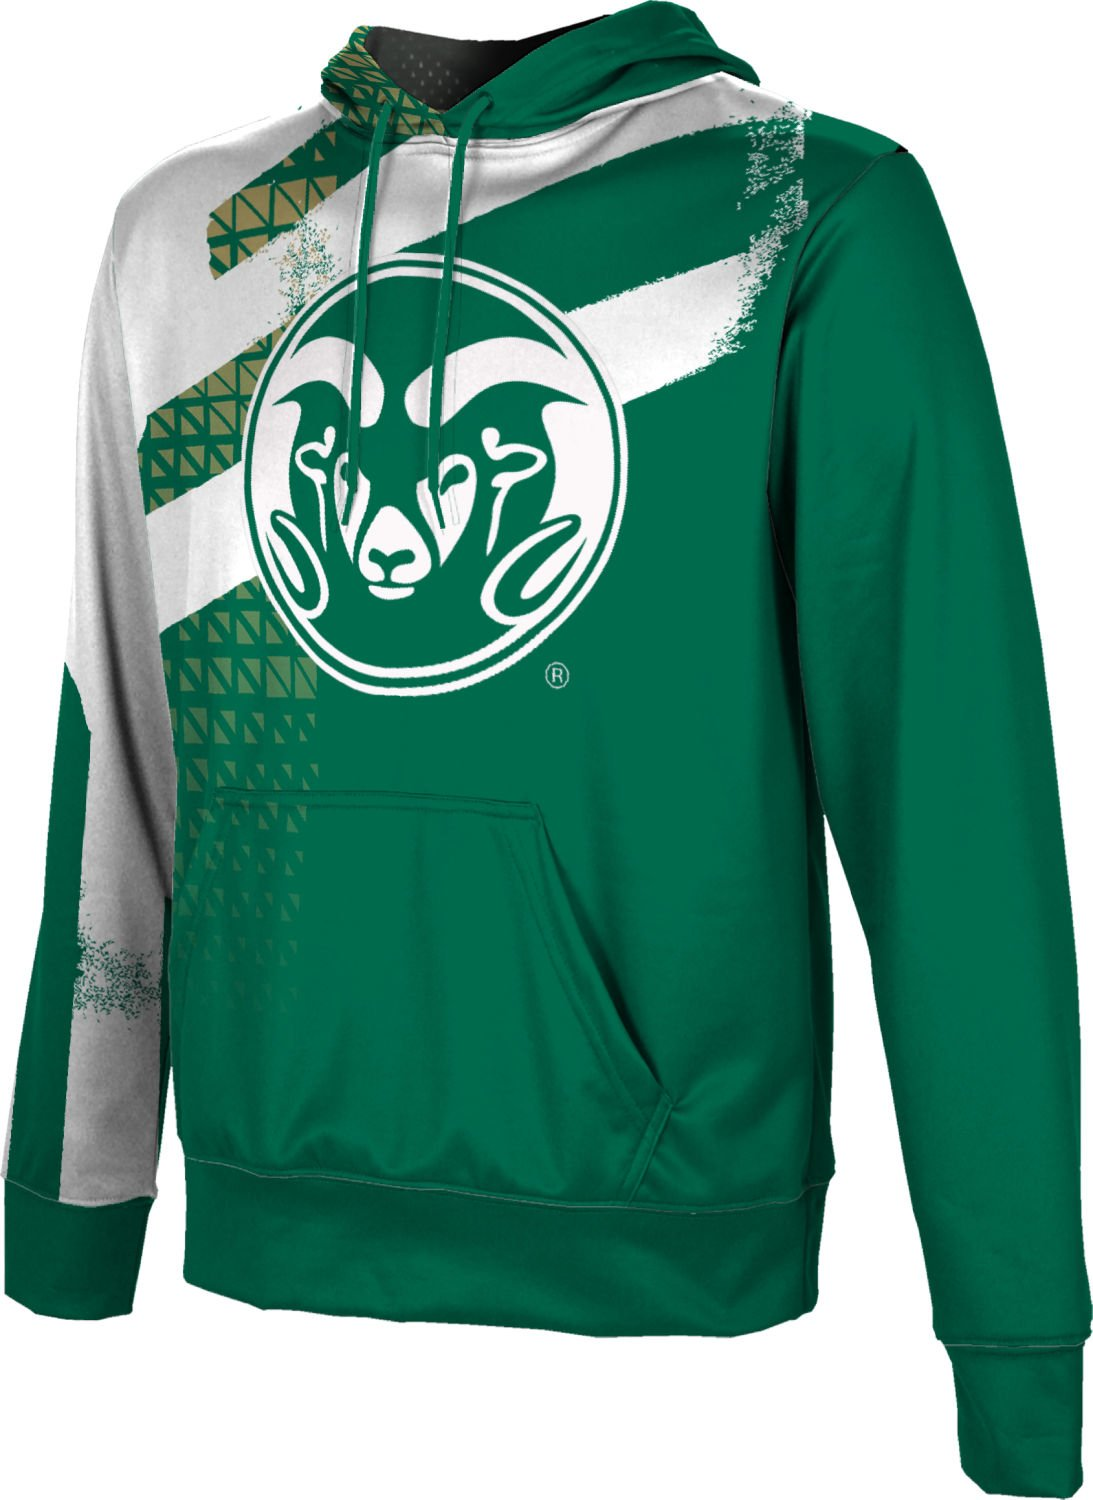 Colorado State University Boys' Pullover Hoodie, School Spirit Sweatshirt (Structure) F8E33 Green and CSU Gold